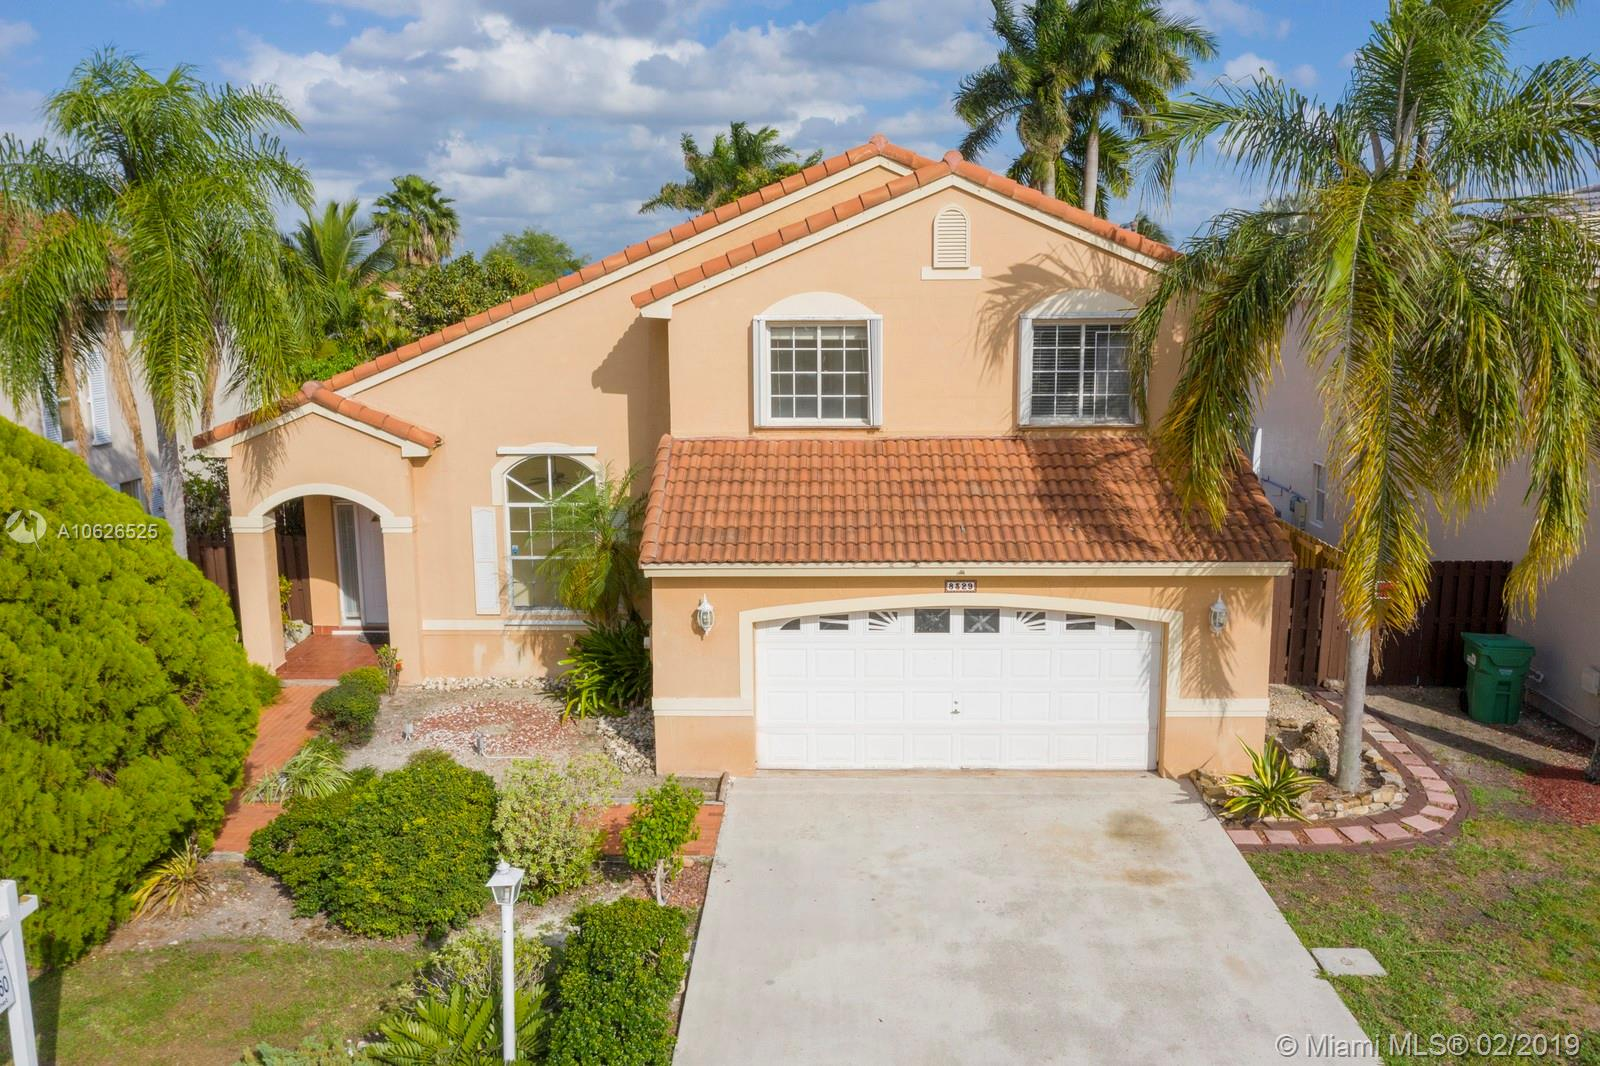 One of Kendall West 4 Bedroom Homes for Sale at 8329 SW 160th Ave